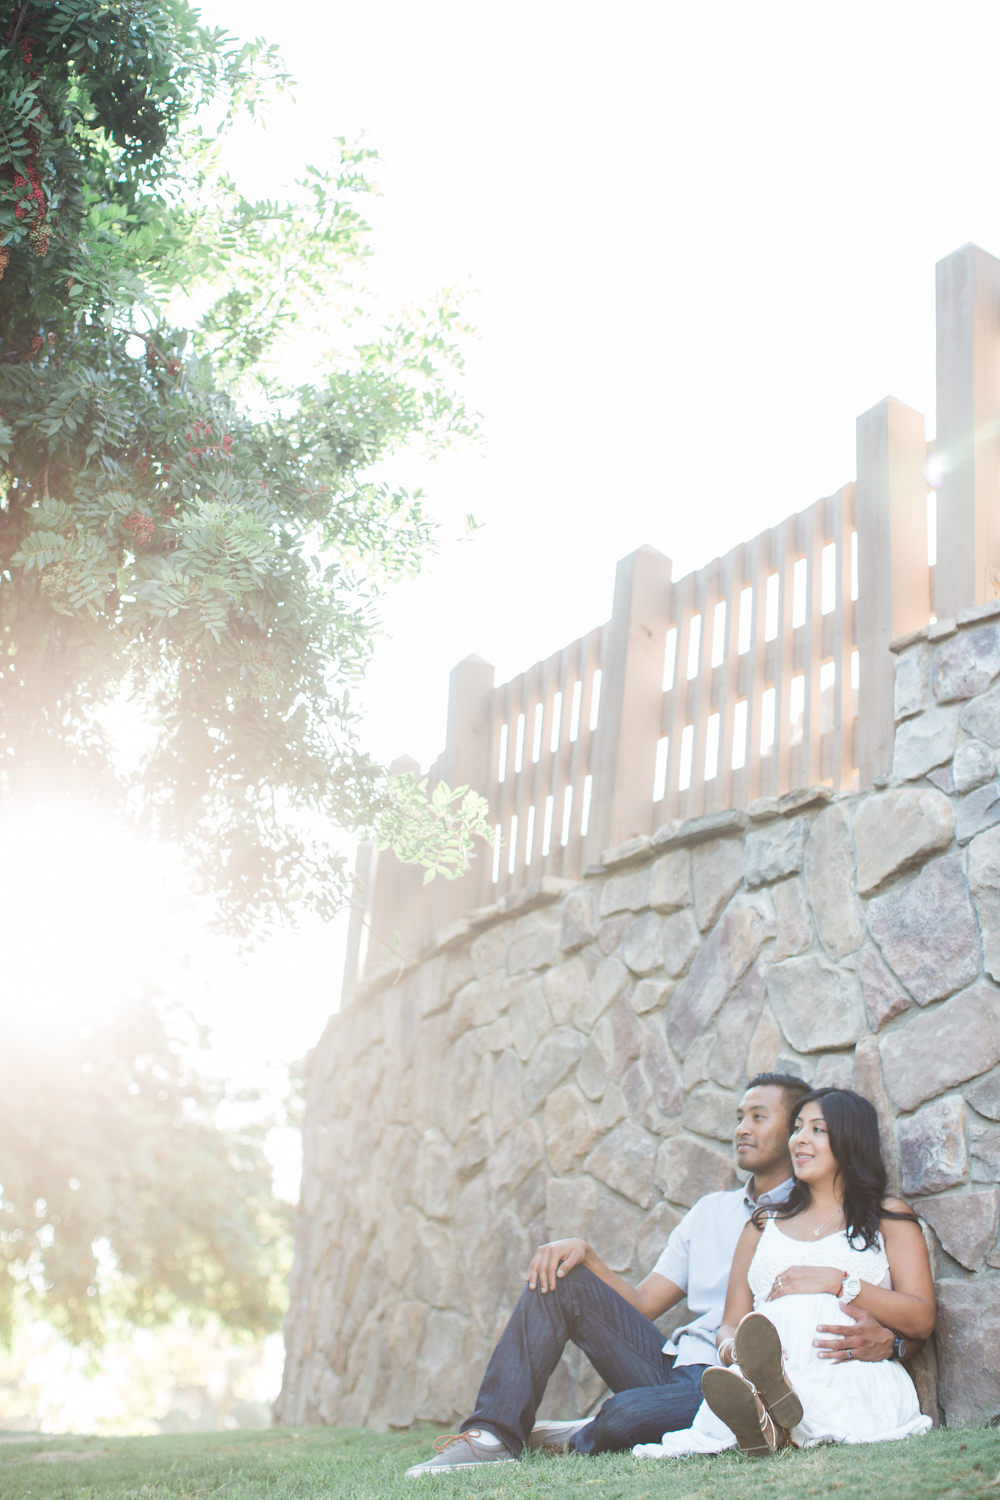 Marcella_Maternity_Cerritos_BrandonJFerlin_Photography-42.jpg